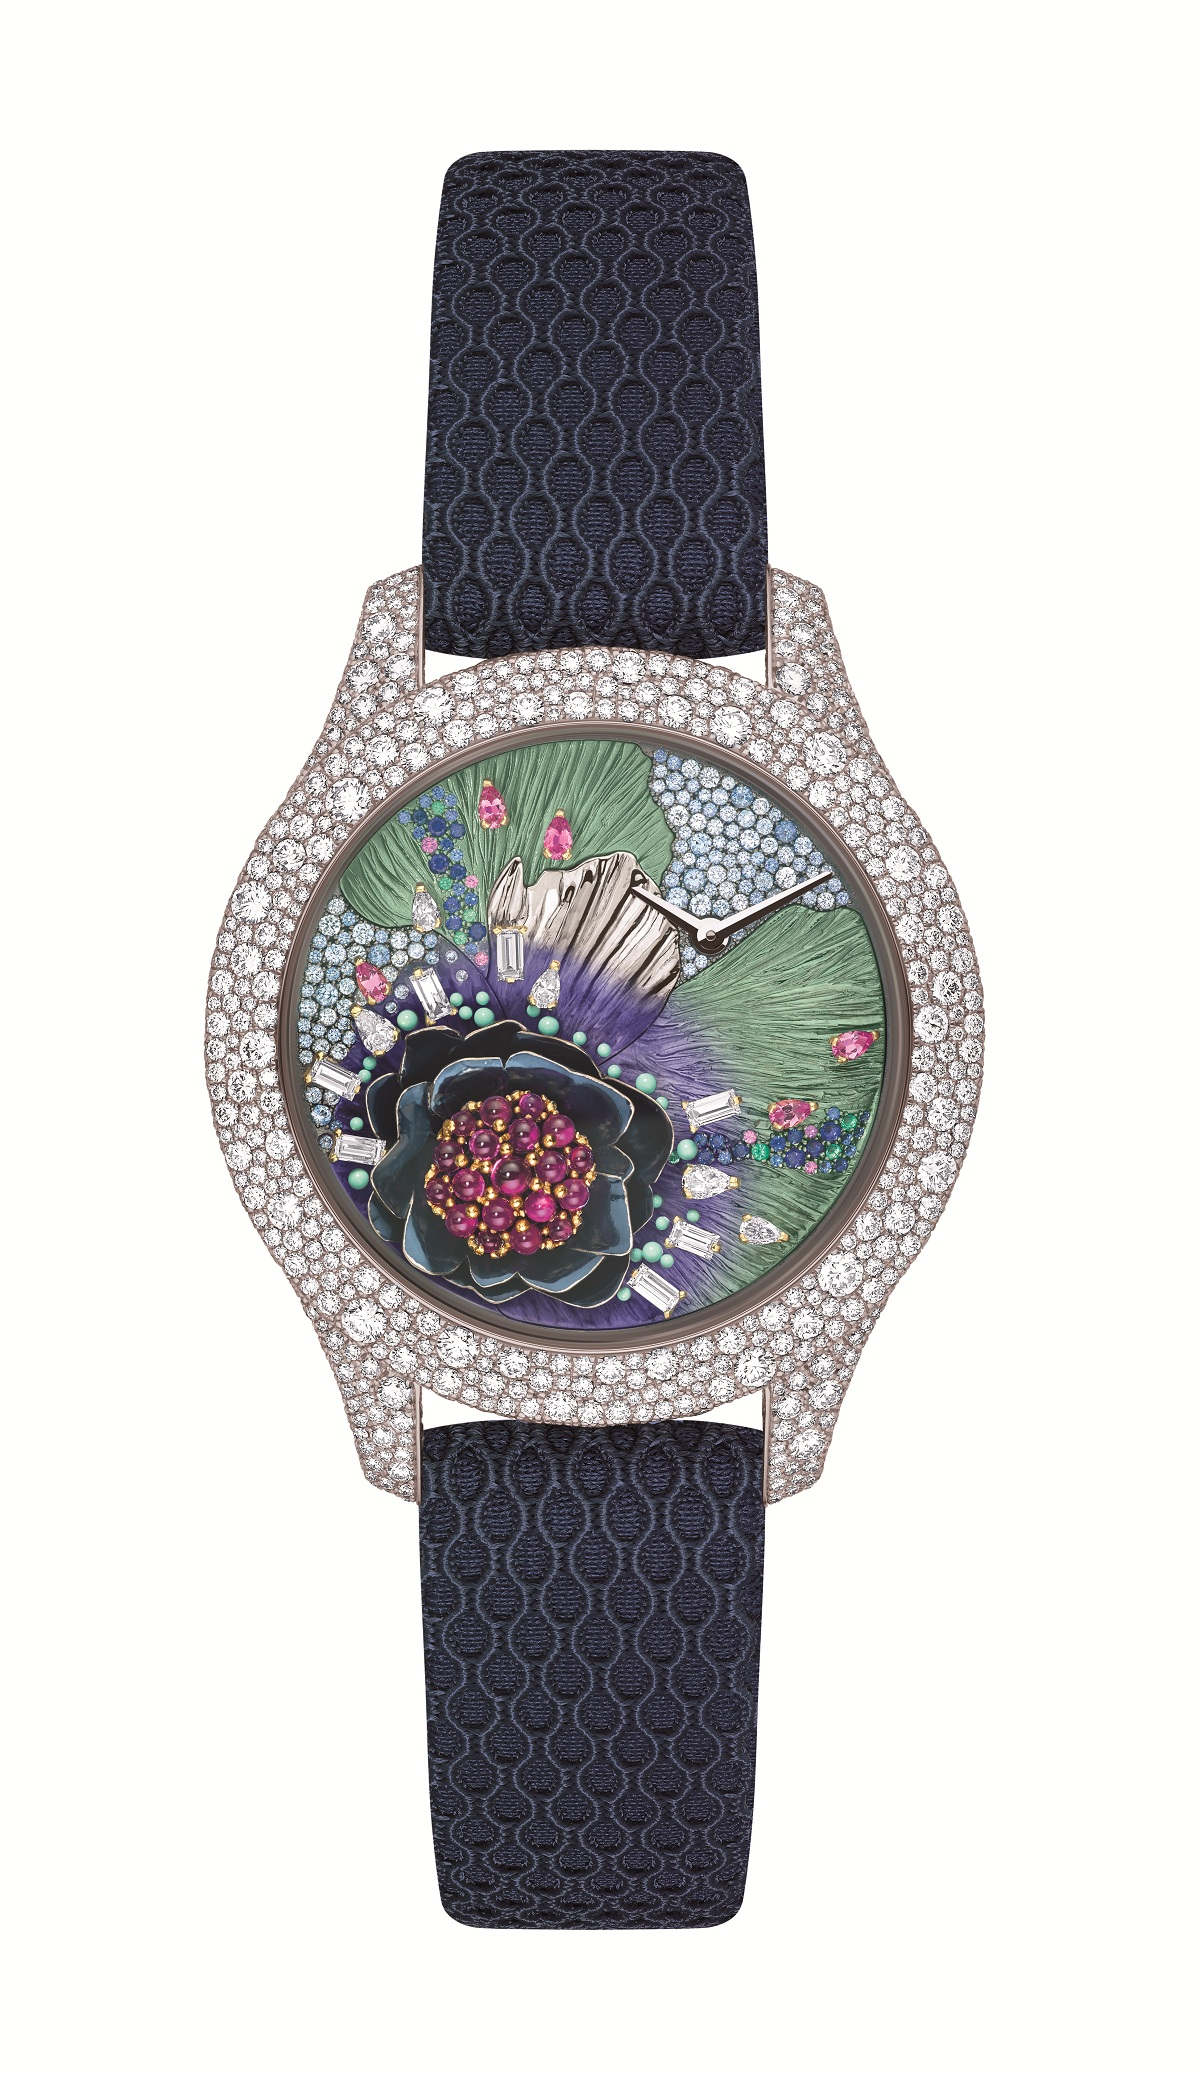 DIOR GRAND SOIR BOTANIC N1 36MM Fashionela